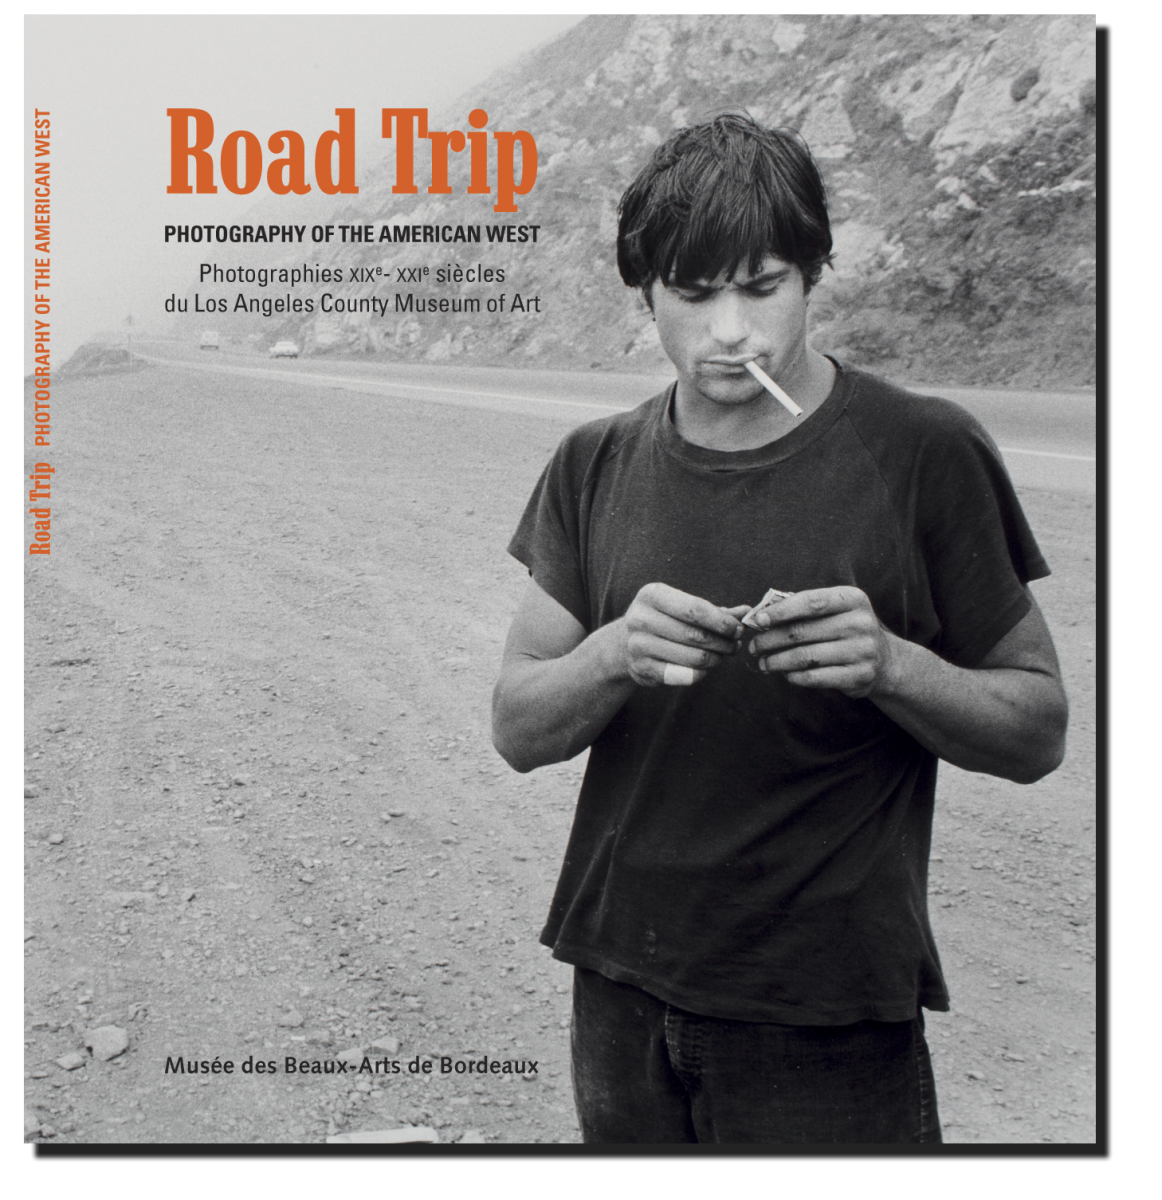 Couverture du catalogue de l'exposition Road Trip - Bordeaux, 2014